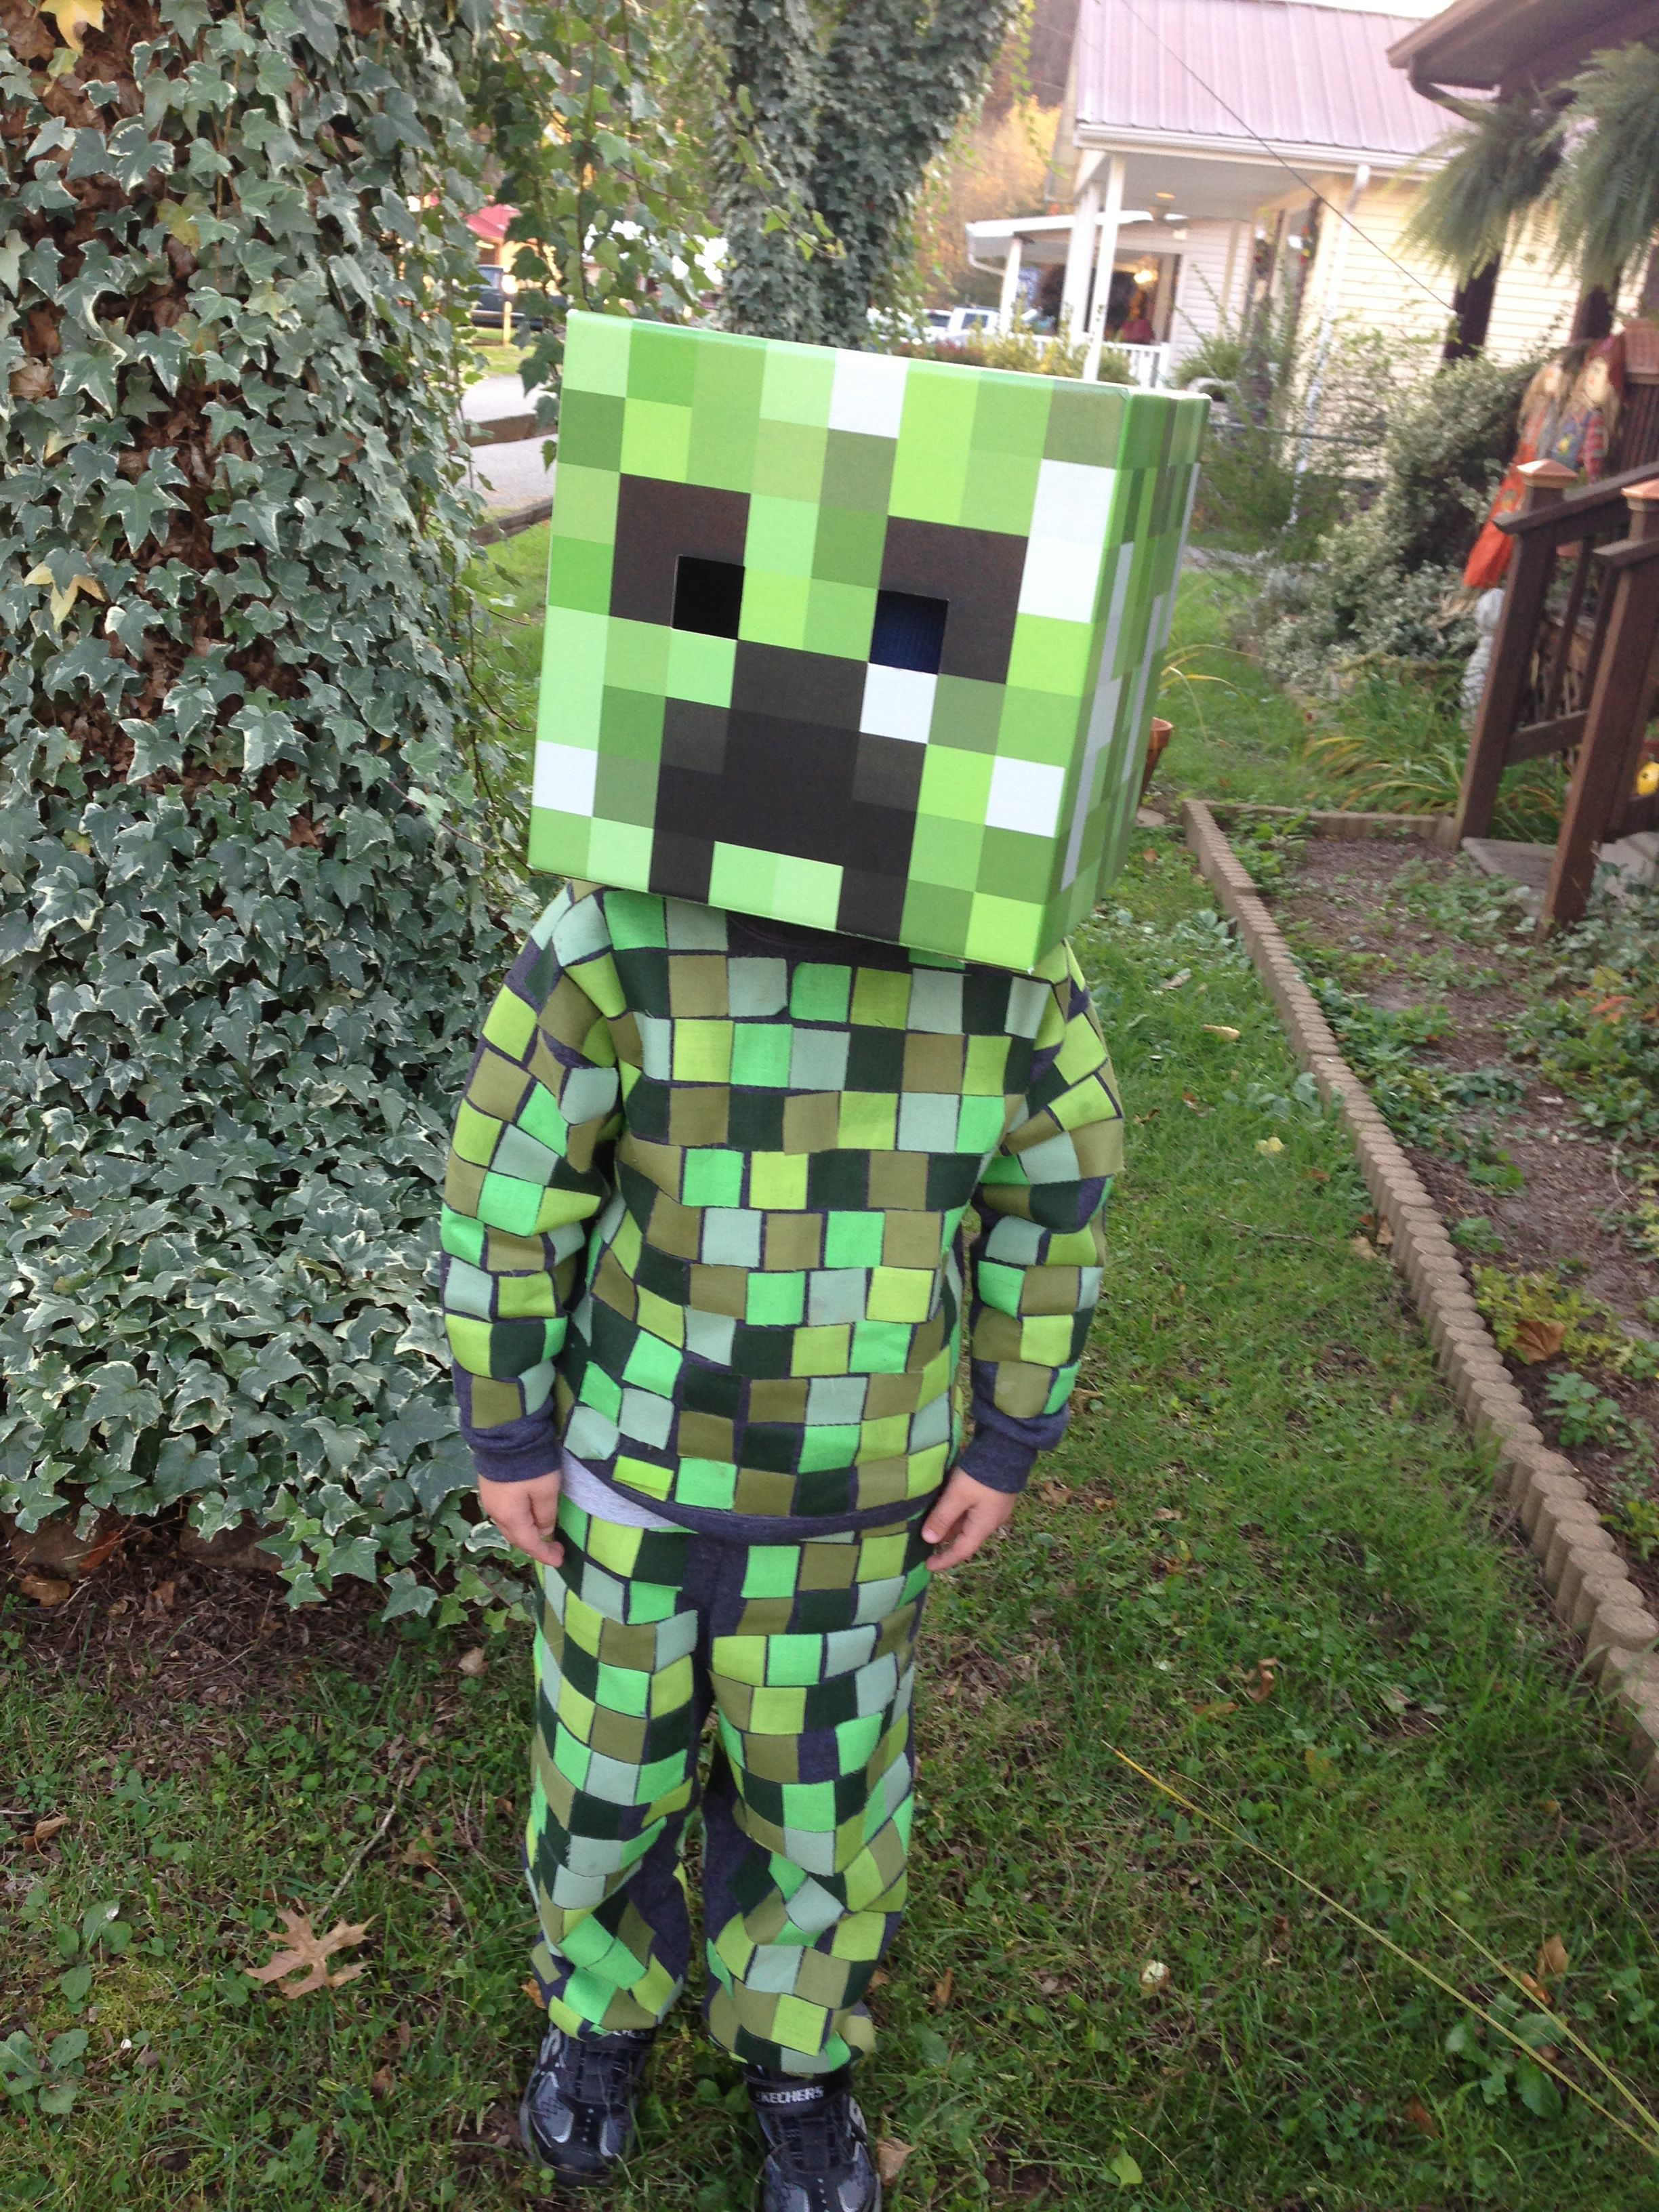 d2979f3d6233 DIY Minecraft Creeper Costume Gray sweatsuit with 1.5 inch squares ...